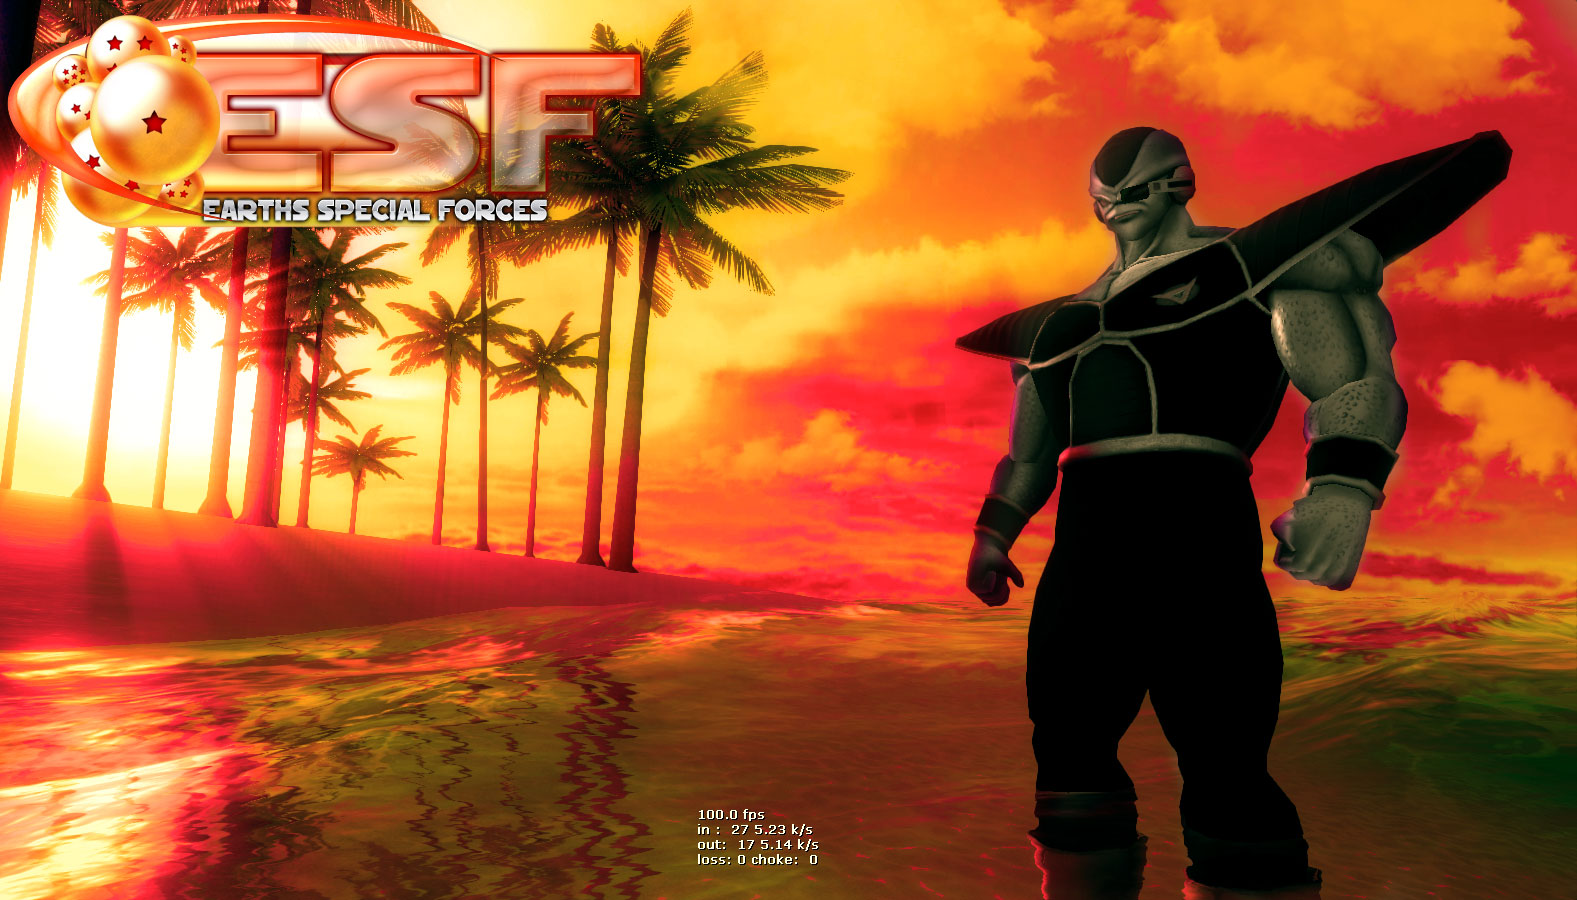 (ESF) Earth's Special Forces Versão Final - Imagens Esf_island_test0009